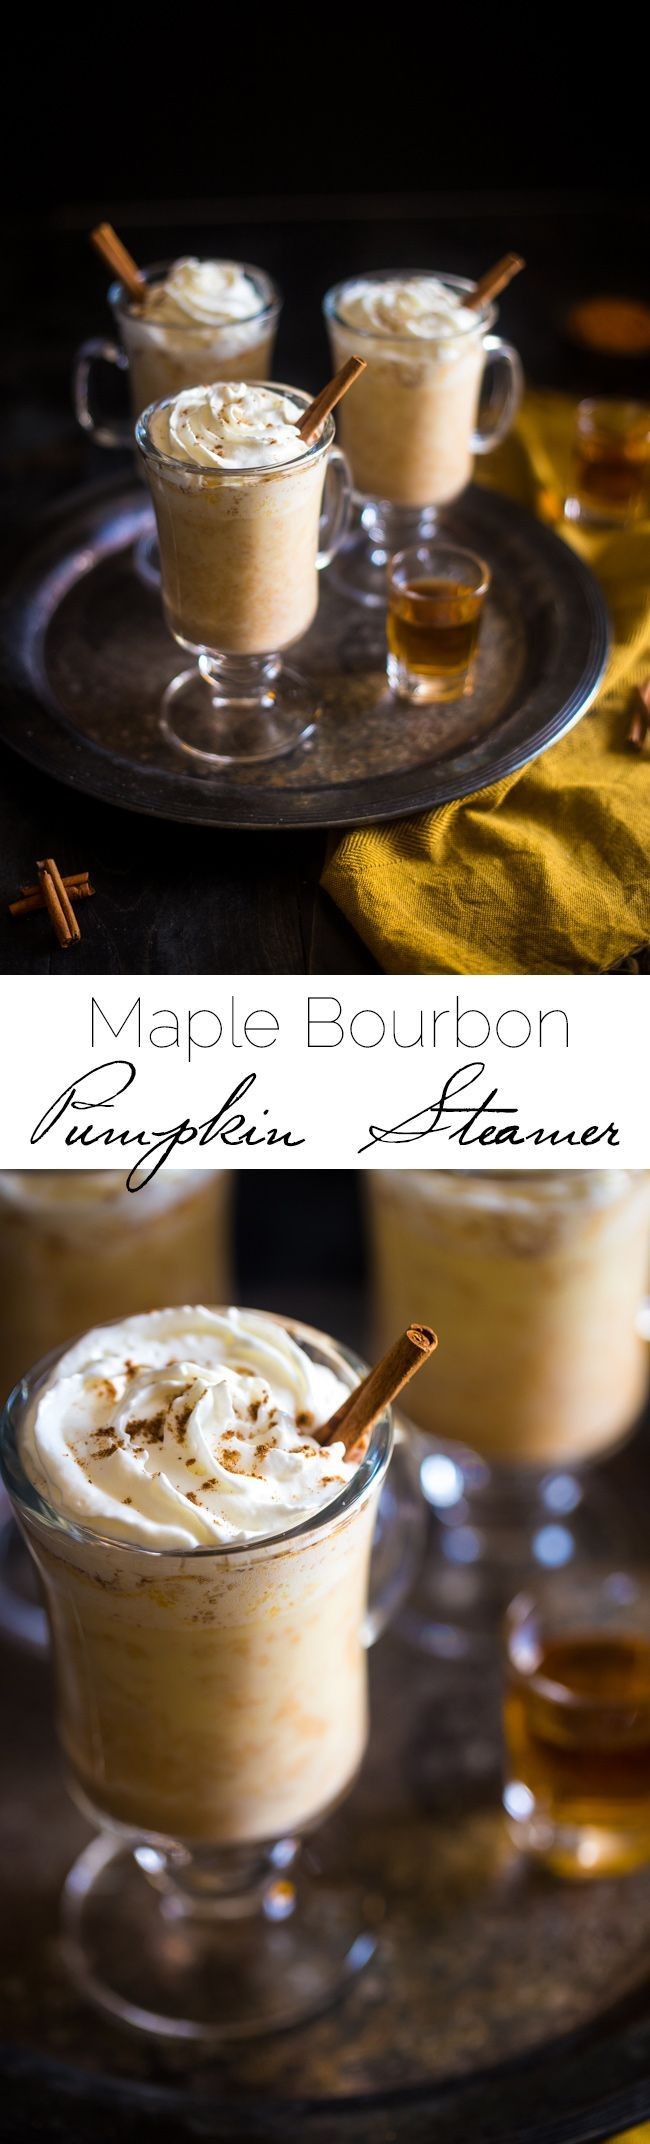 Maple Pumpkin Steamed Almond Milk with Bourbon - Mixed with pumpkin puree, naturally sweetened with maple syrup and finished with bourbon. It's an easy, cozy drink for the fall! | Taylor Kiser: